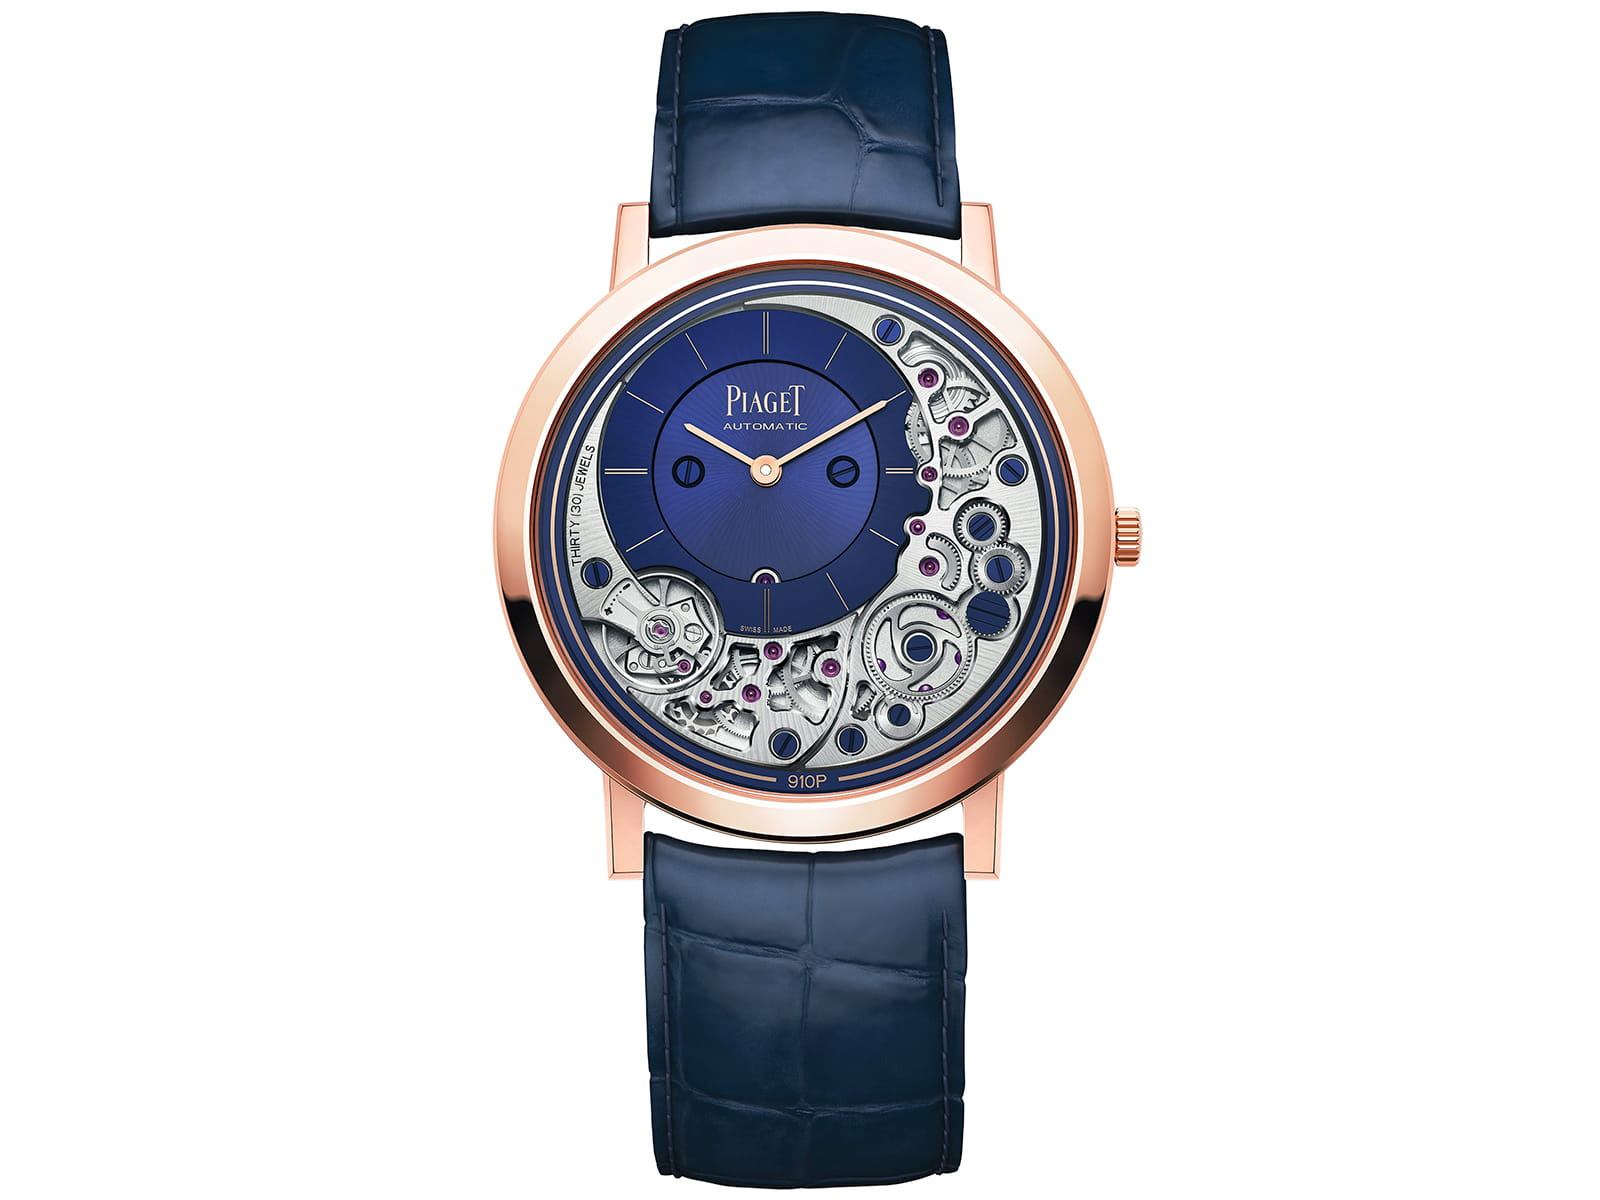 piaget-altiplano-ultimate-automatic.jpg